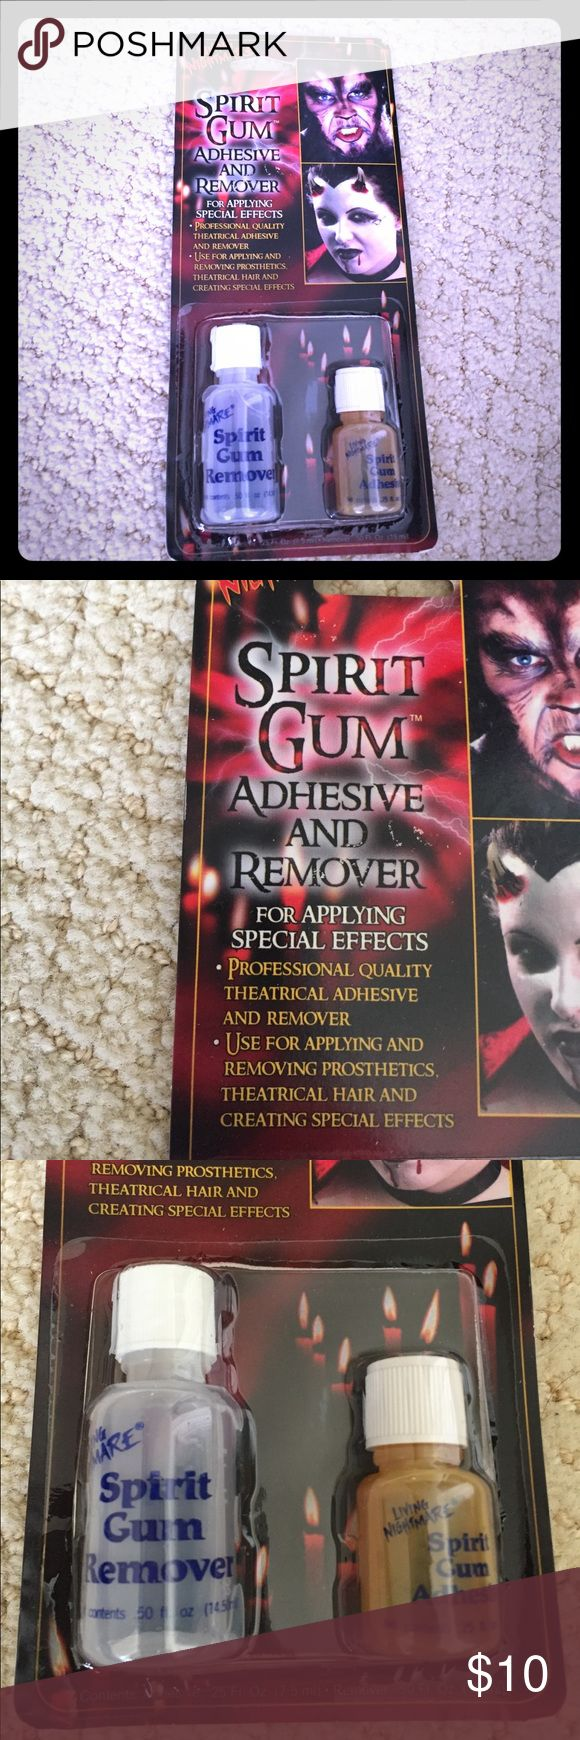 Adhesive remover This is used for adding and removing special effects to yourself when creating a costume during Halloween Living Nightmare Accessories